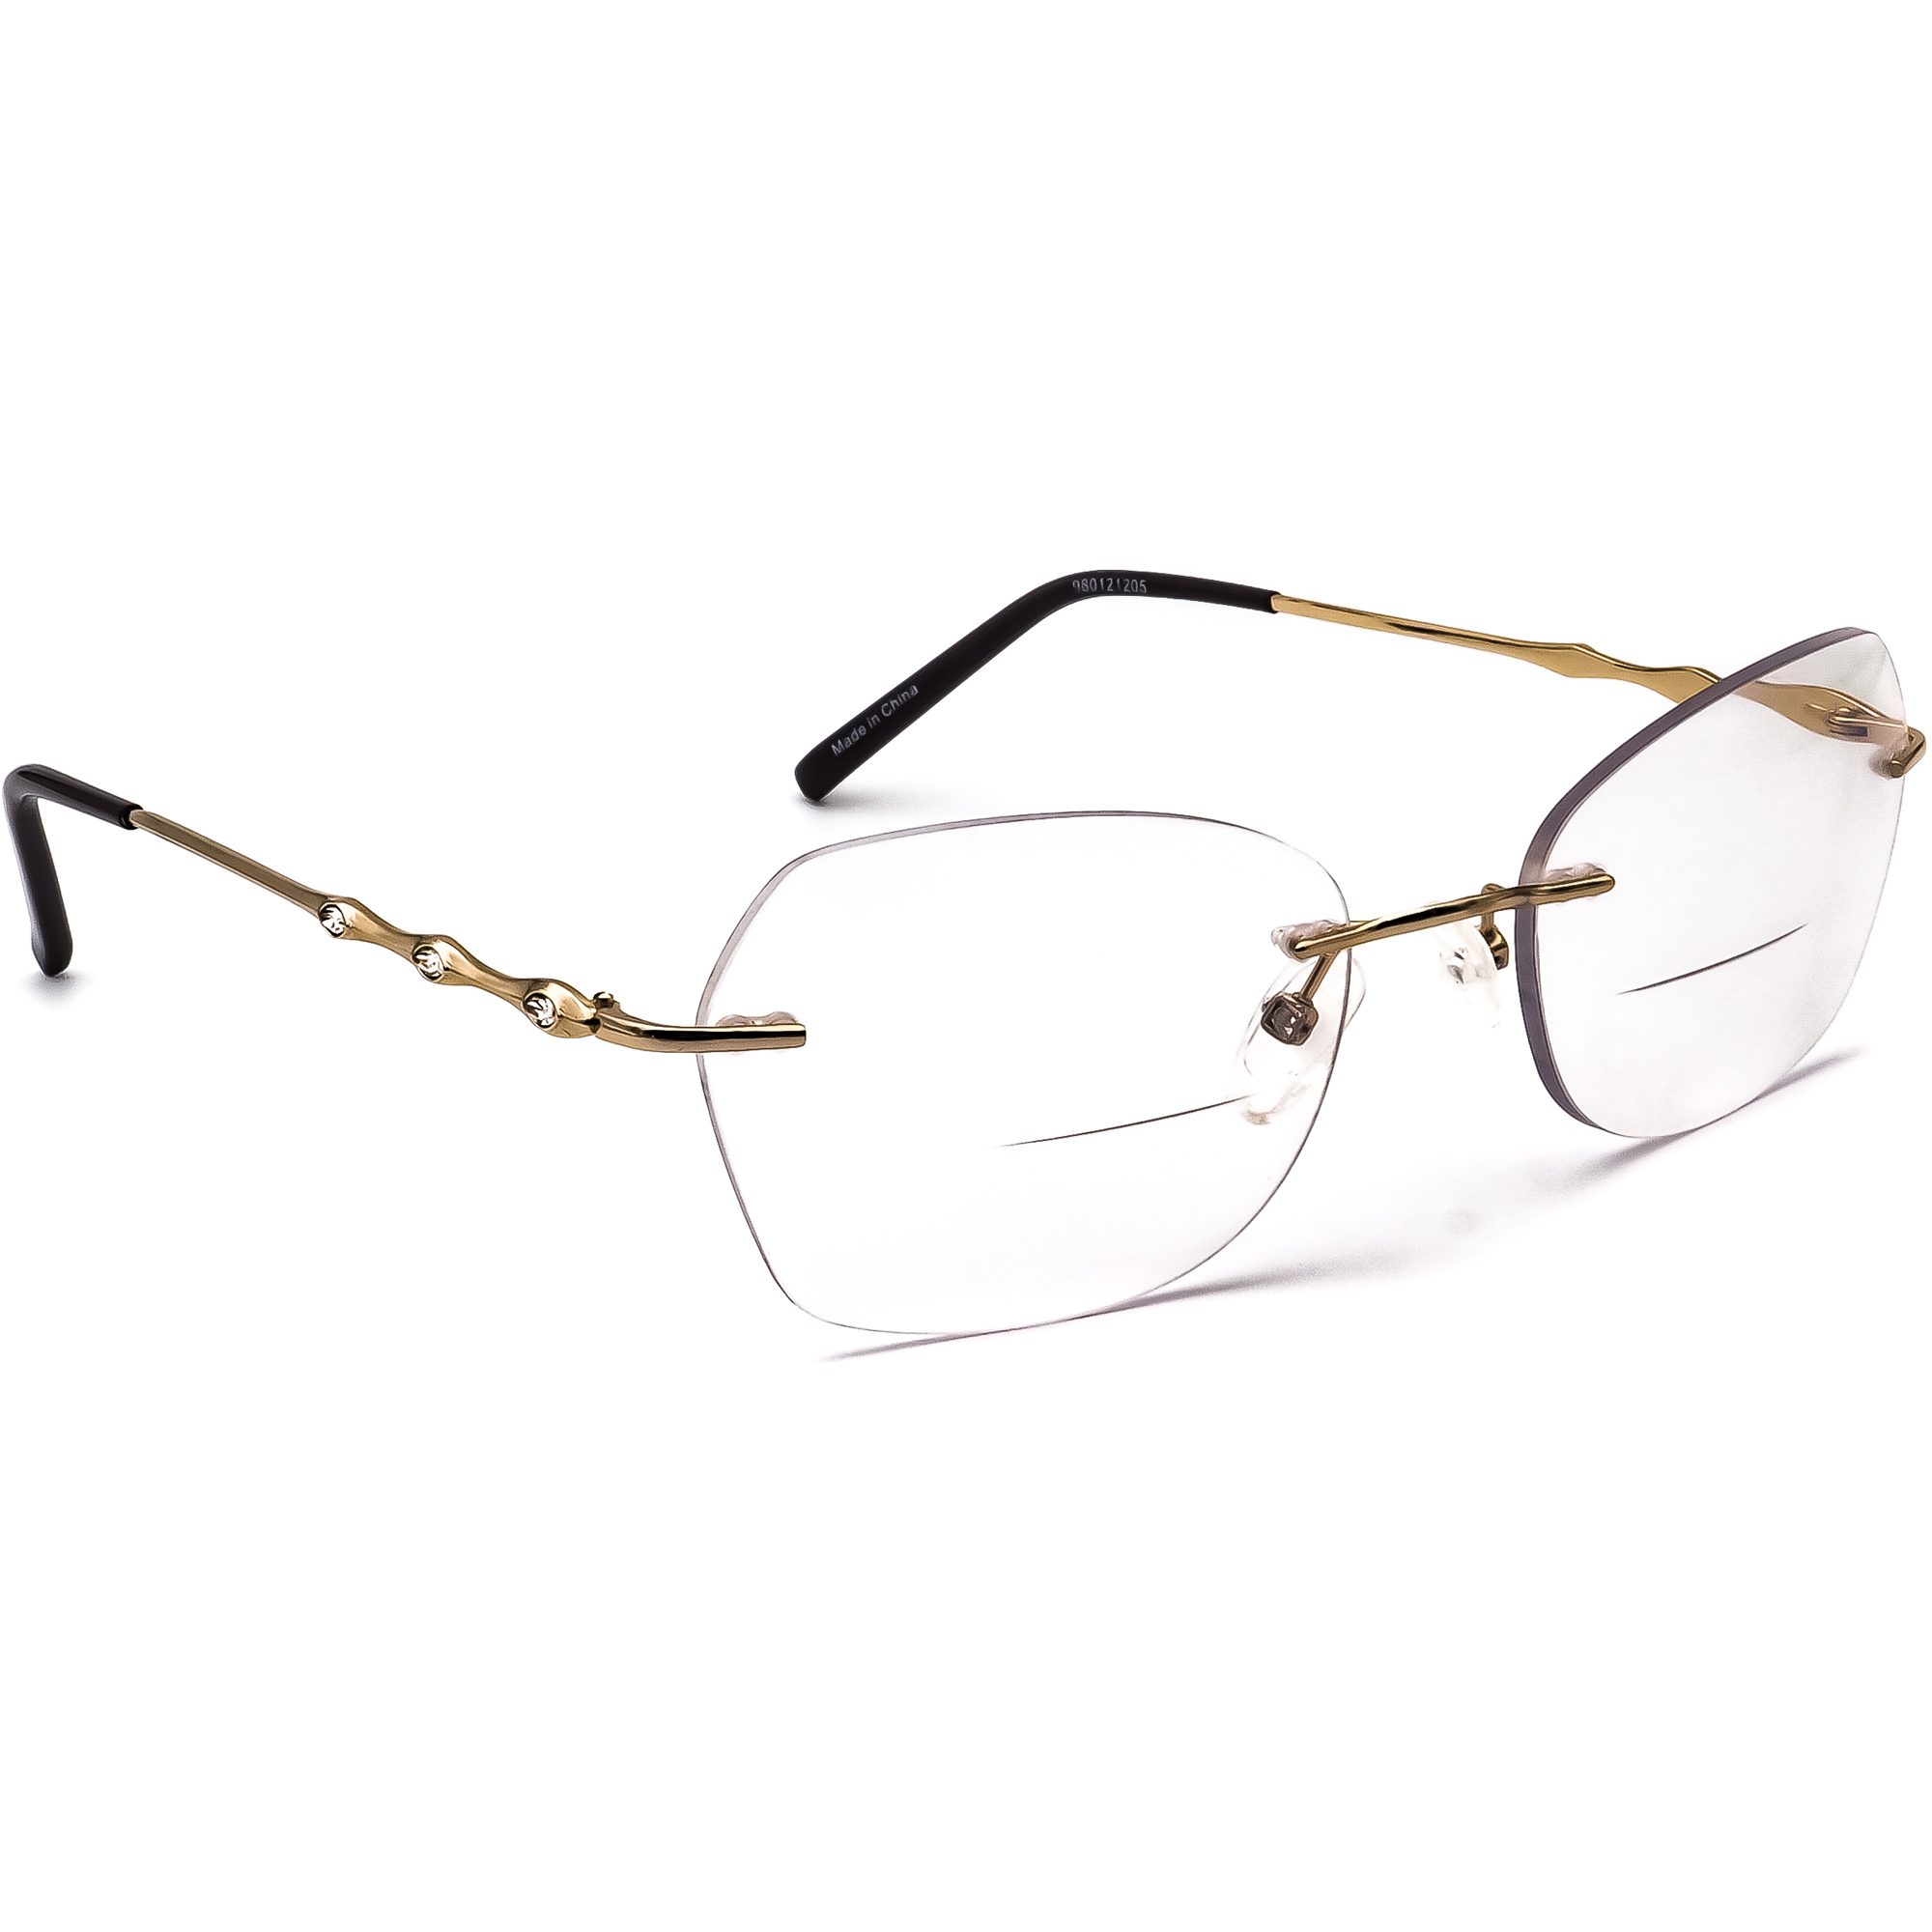 Member's Mark MM 2005-201 Eyeglasses